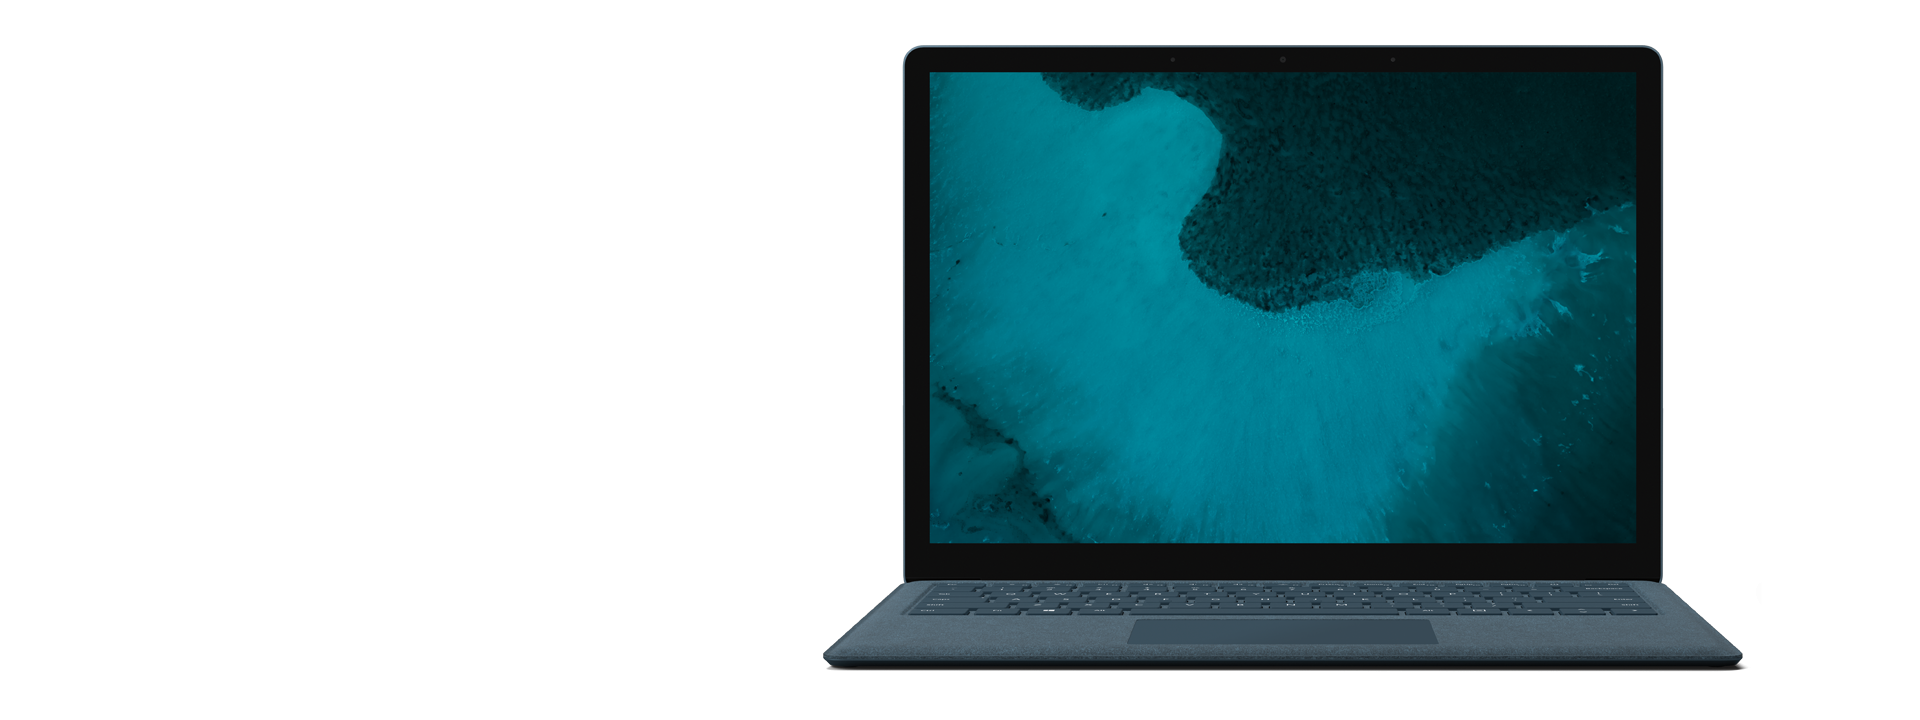 Cobalt Blue Surface Laptop 2